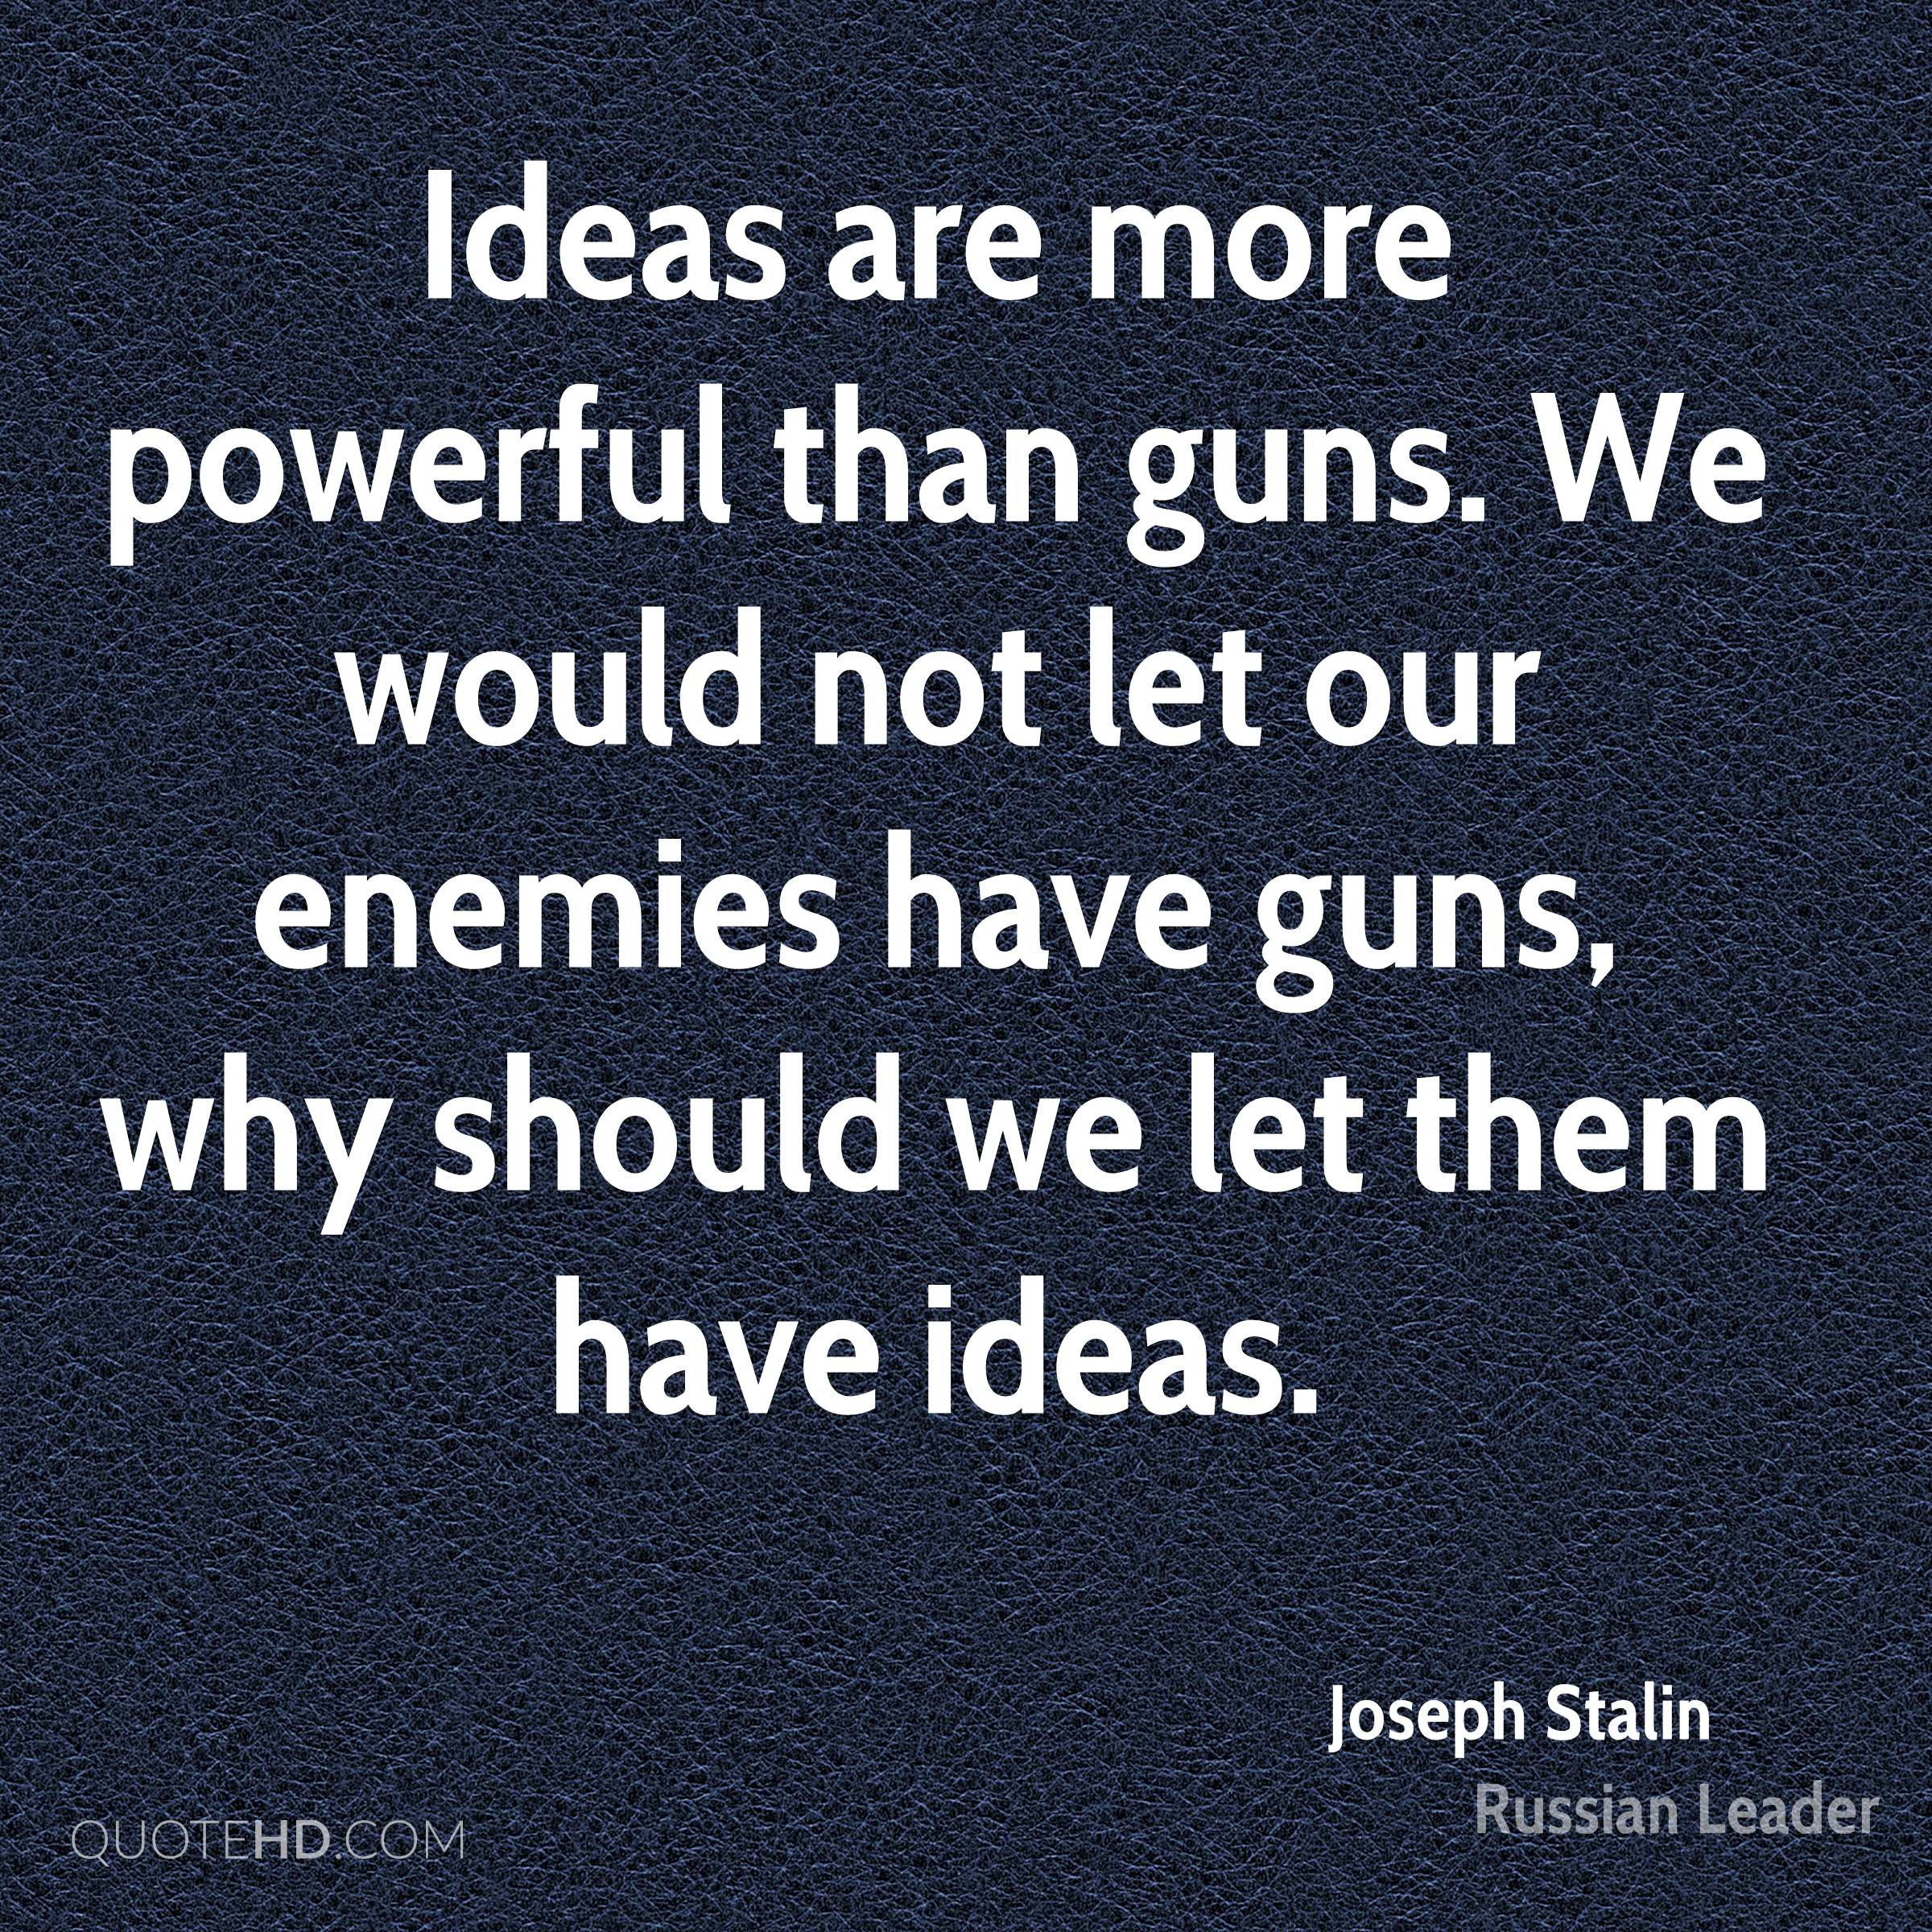 Ideas are more powerful than guns. We would not let our enemies have guns, why should we let them have ideas.